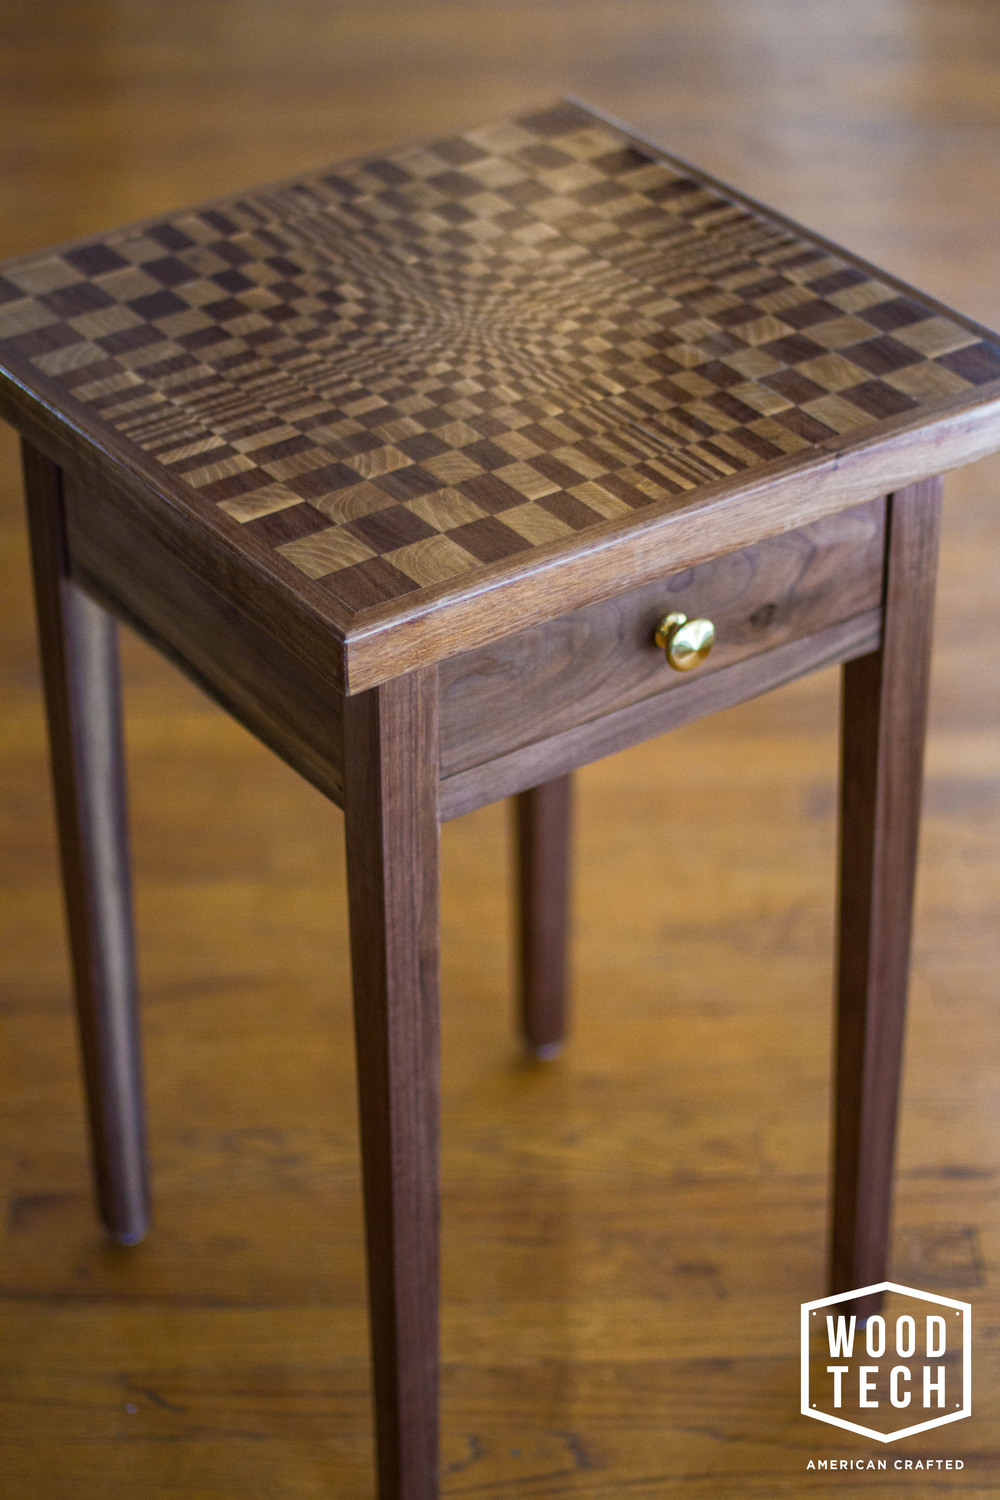 Custom Wood Table with Escher Inspired Design